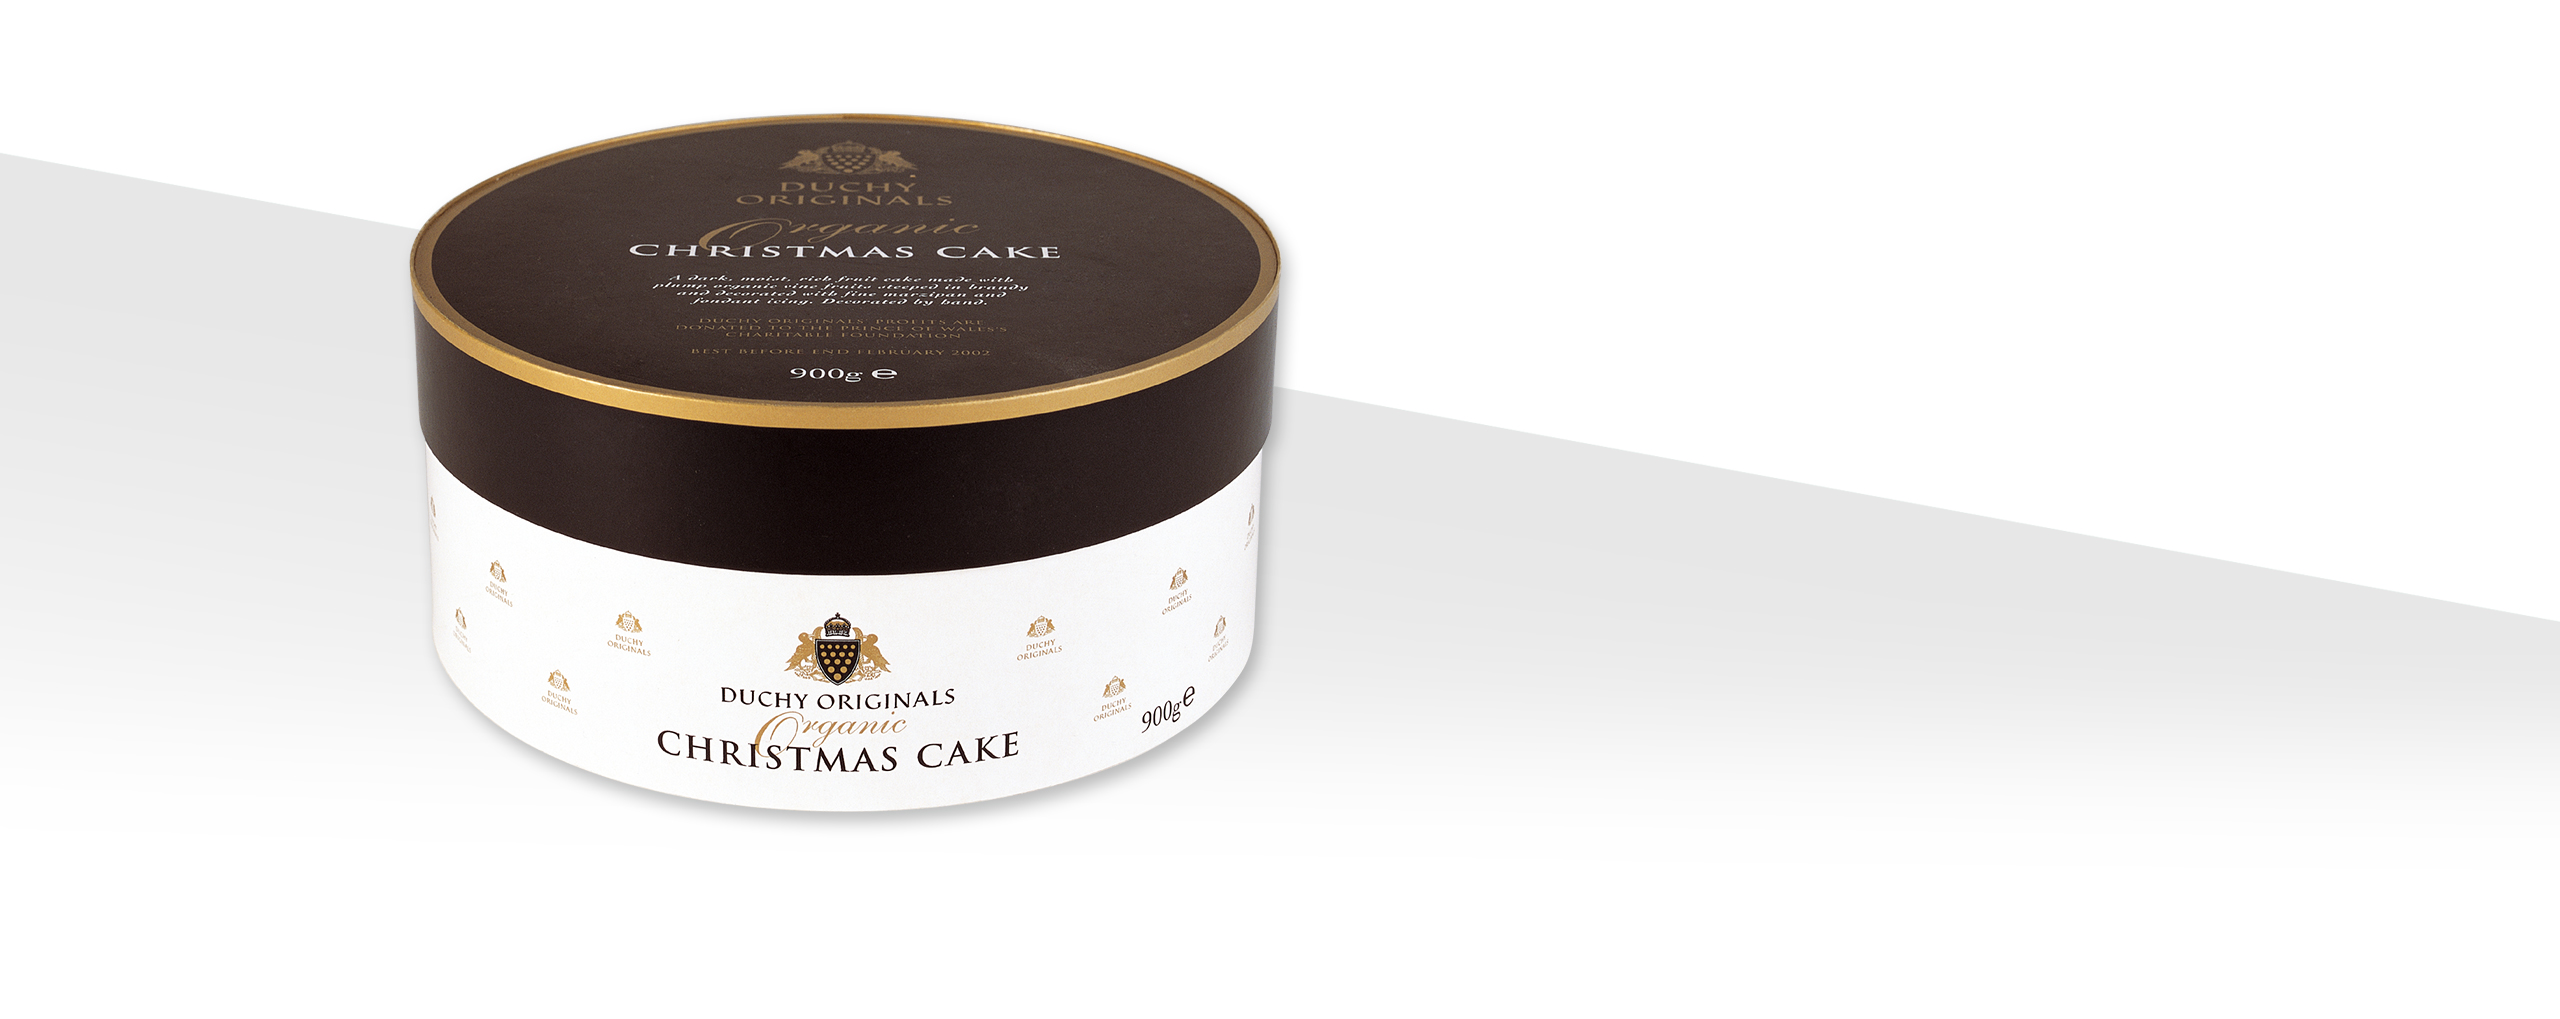 duchy originals packaging design for organic christmas cake